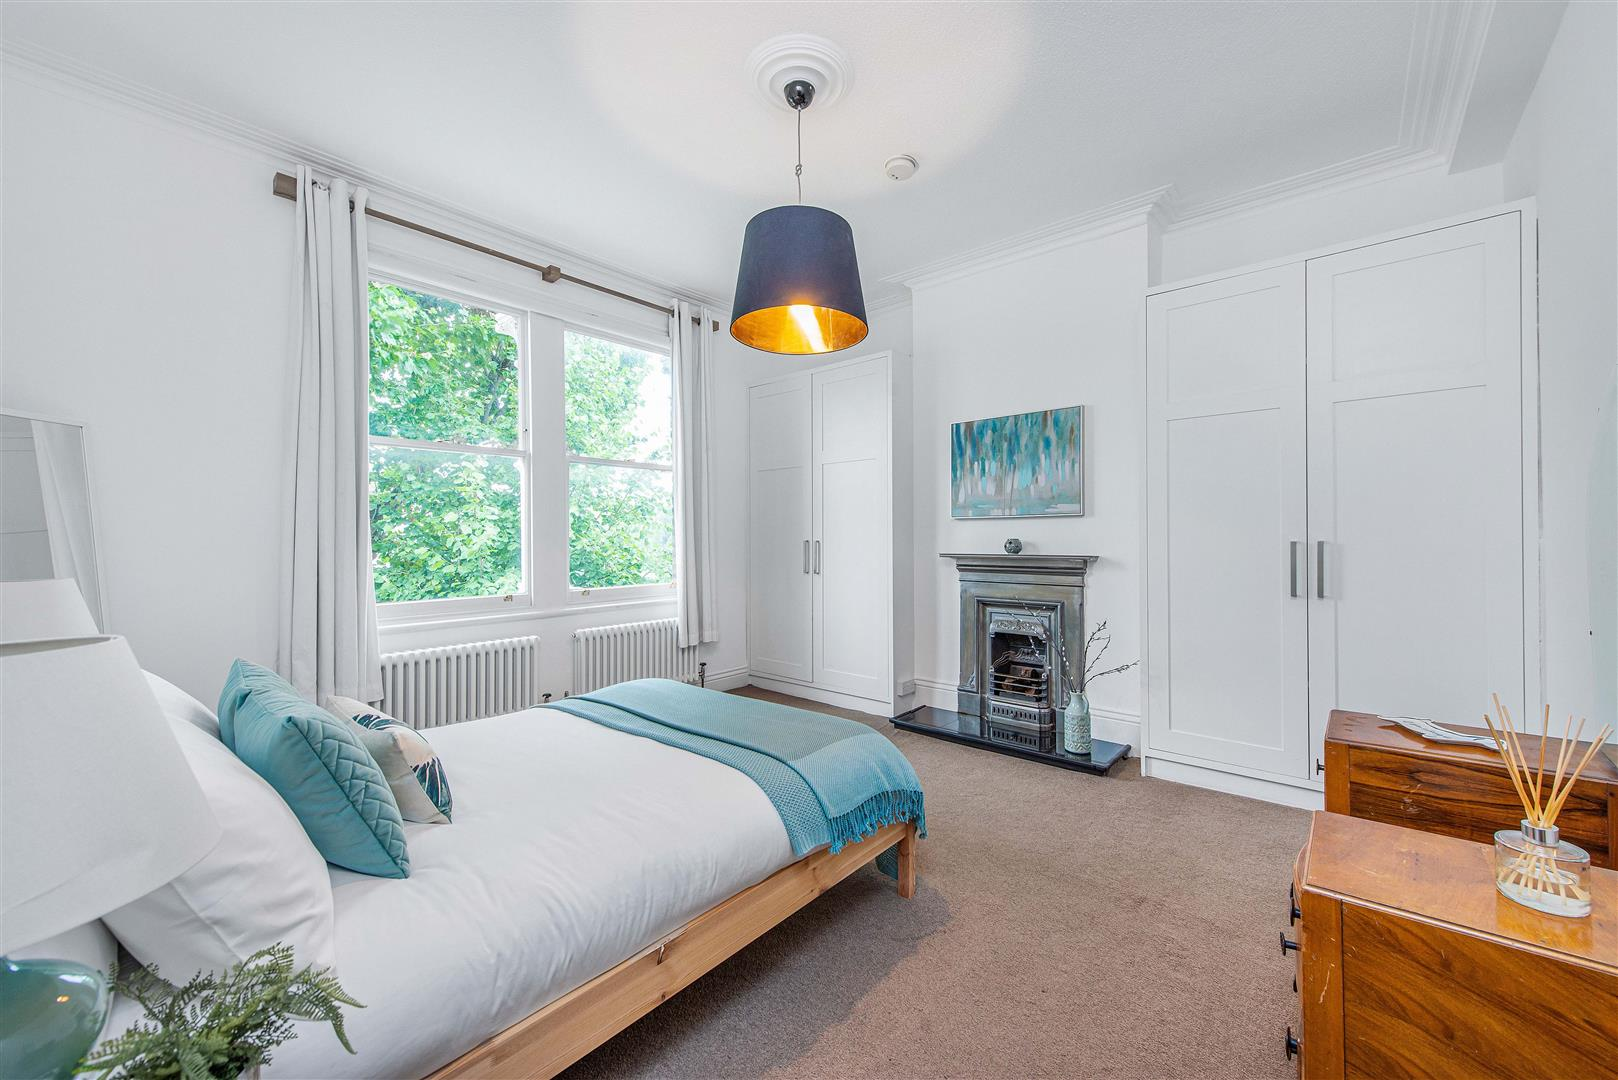 A photo of an immaculate single bedroom from a property that was for rent but now tenanted.